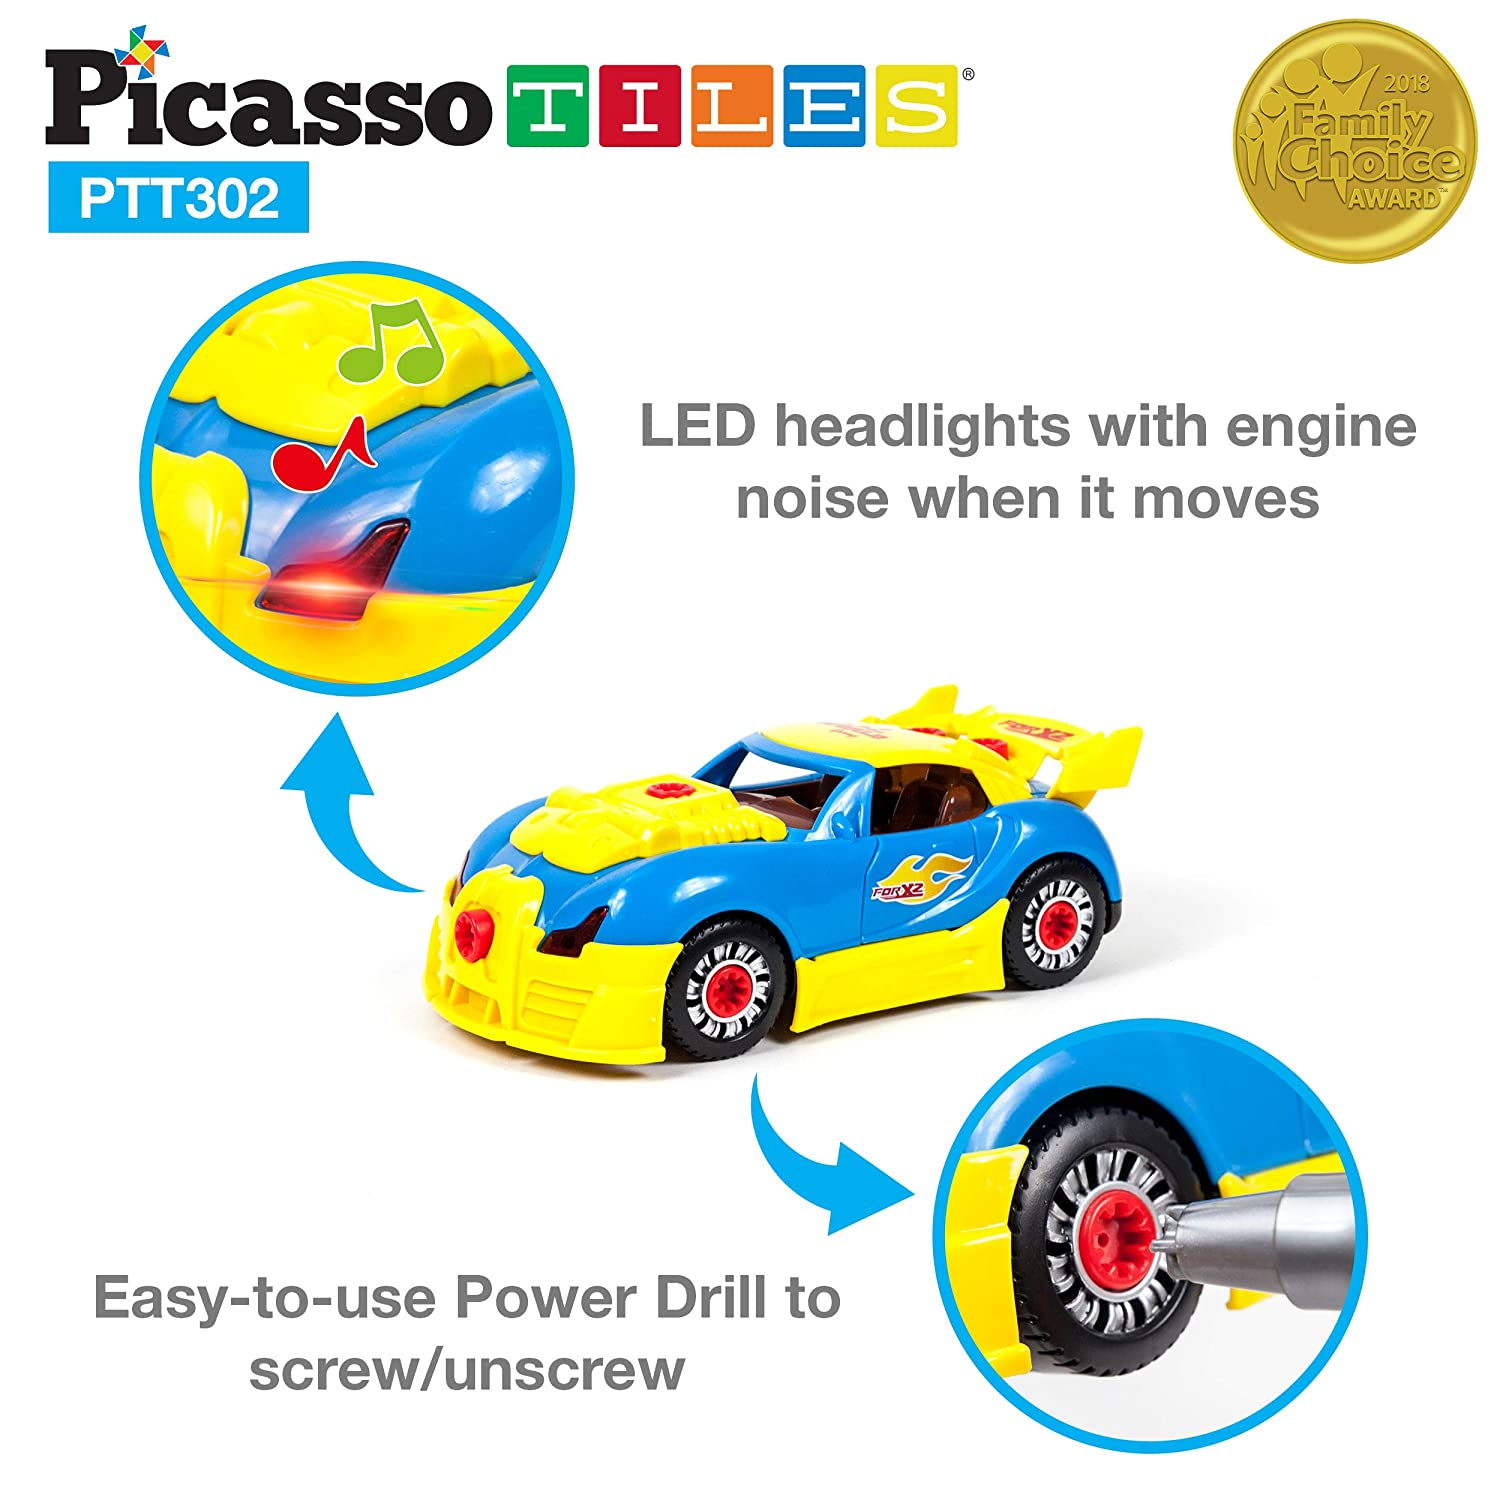 Kit PicassoTiles Take-A-Part Race Car Set with LED Mini Electric Power Tool Reversible Drill Screws Included PTT302 2-in-1 DIY Construction Build Your Own 30pc Racing Car S.T.E.A.M Engine Sound